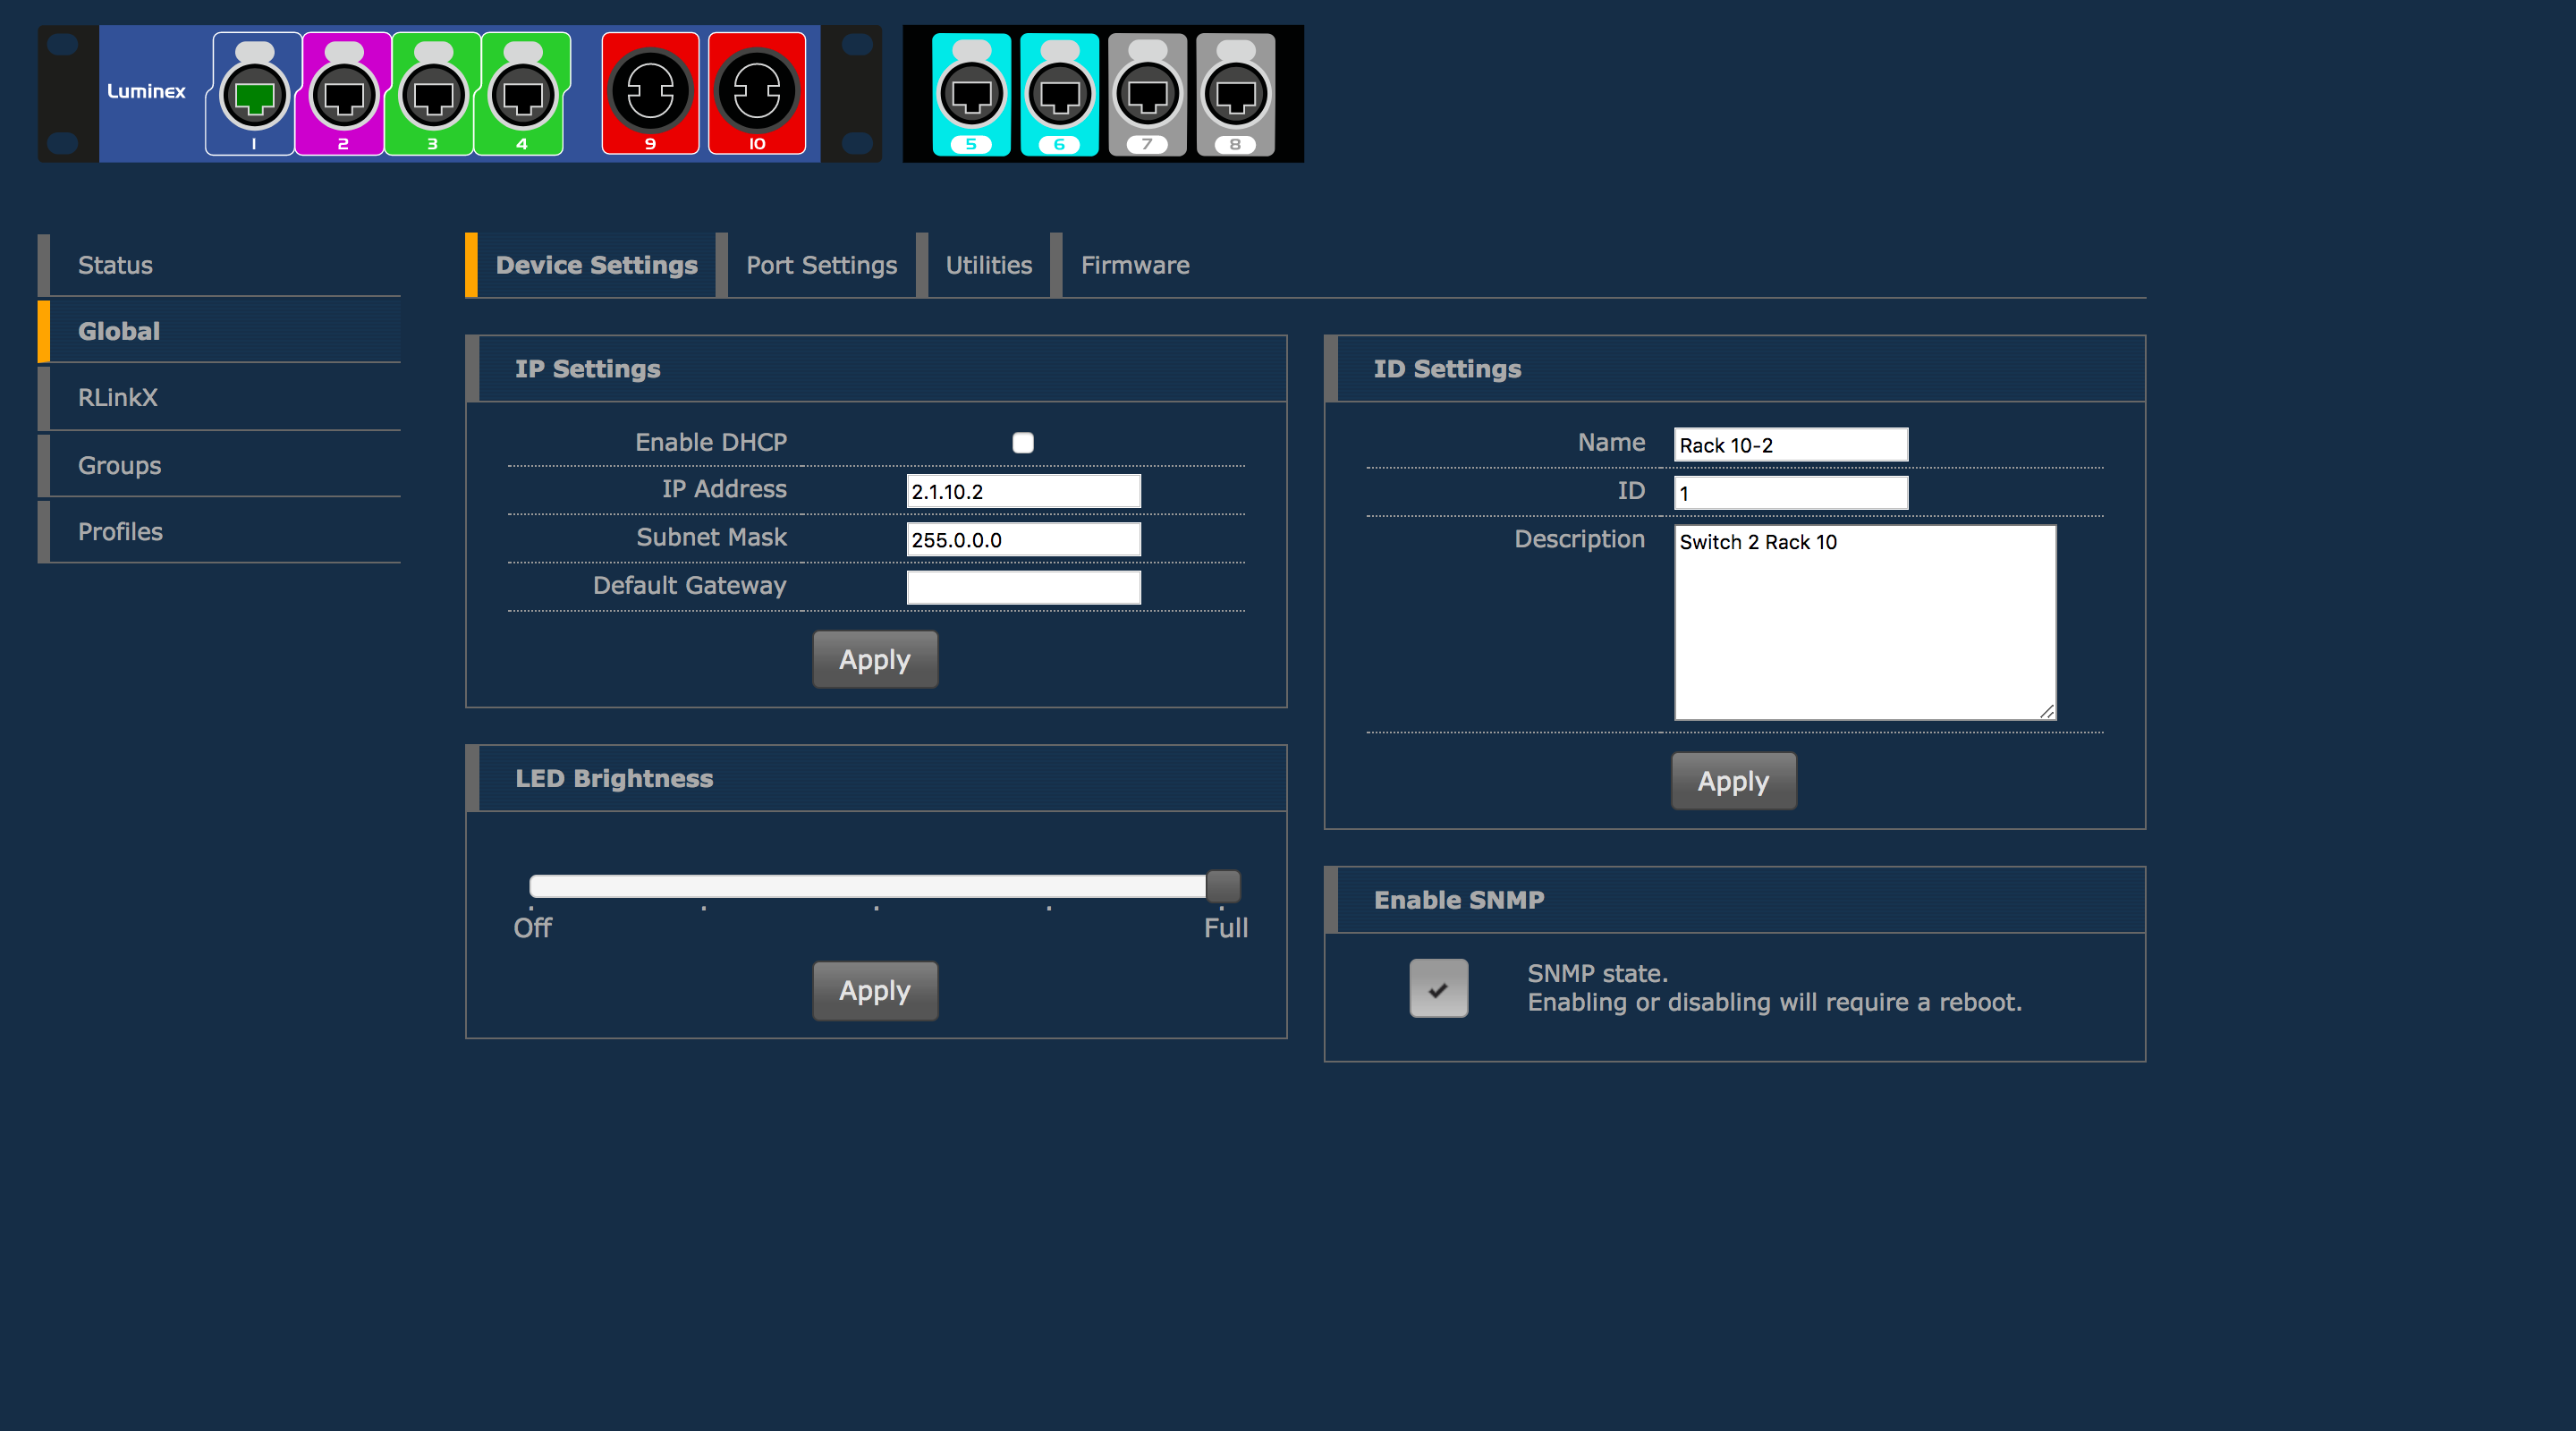 GigaCore 10 web interface - device settings